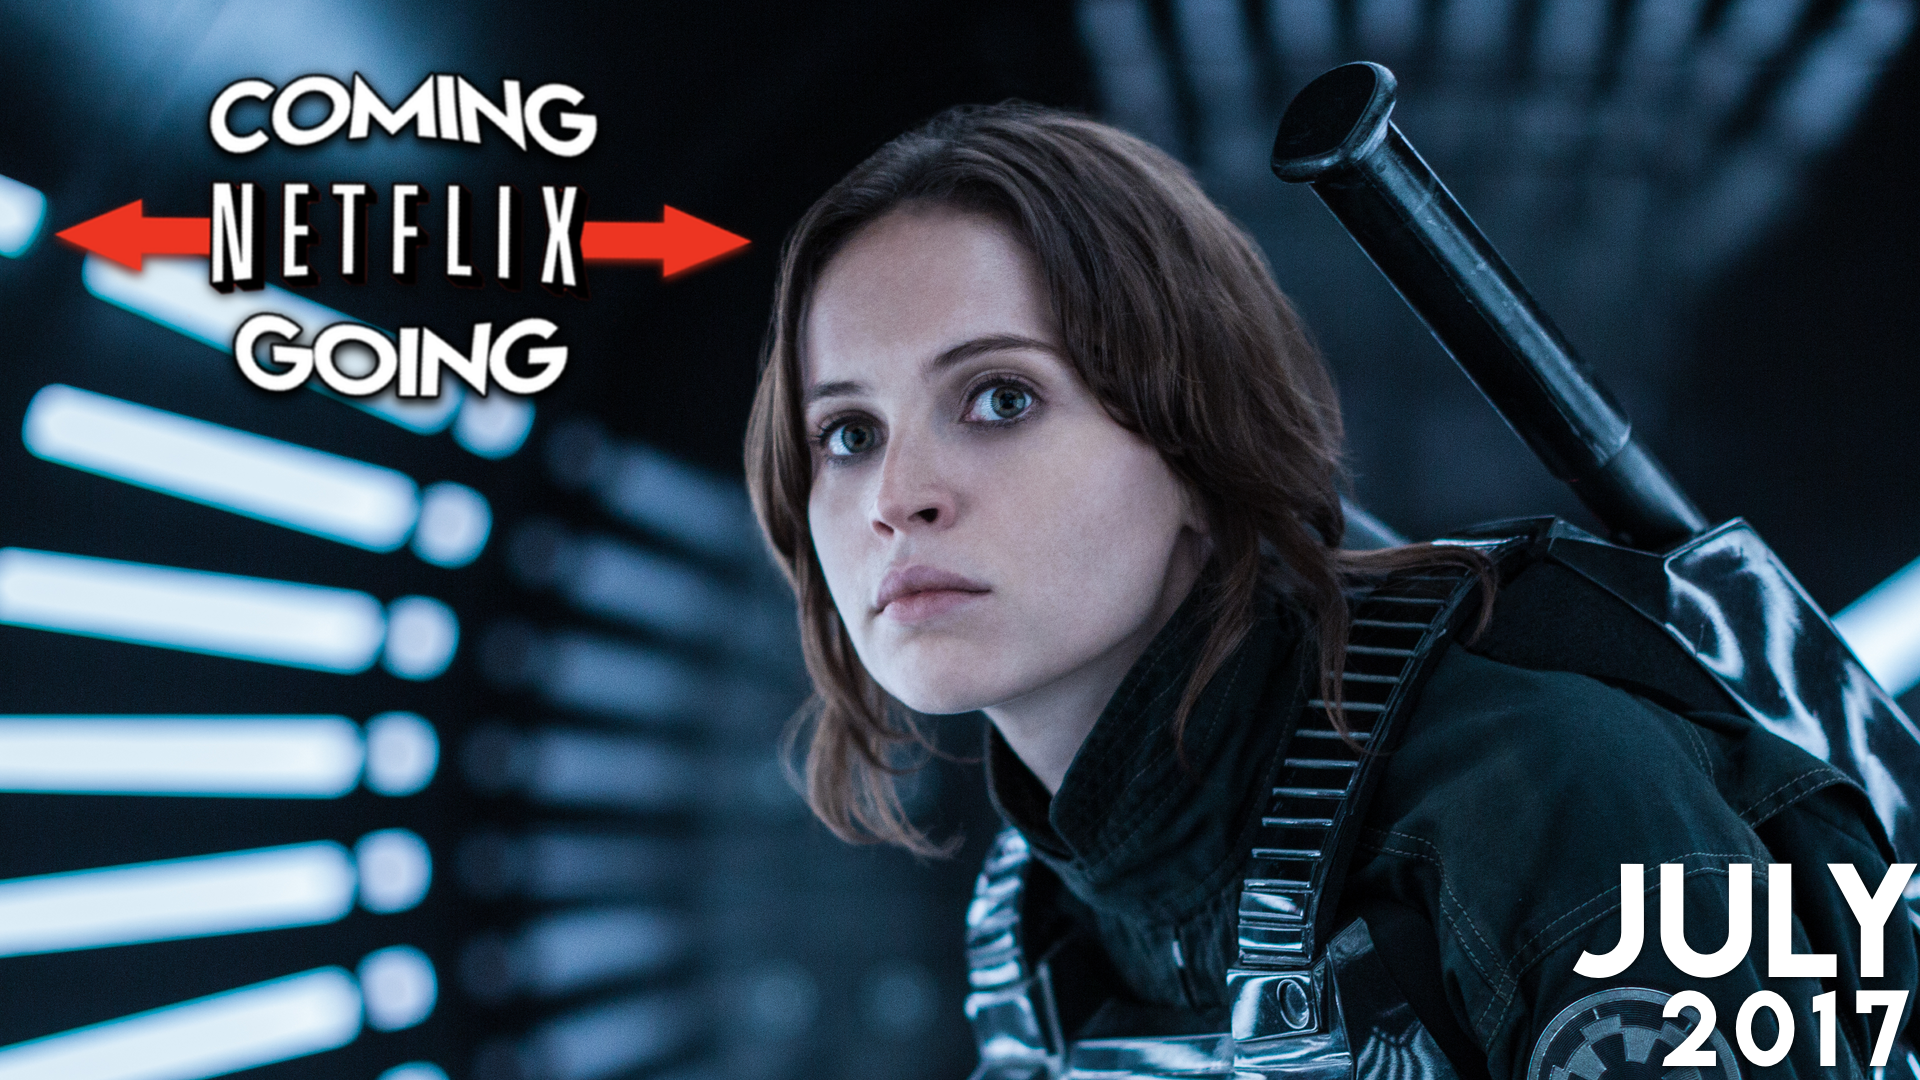 Netflix Coming Going July 2017 Rogue One